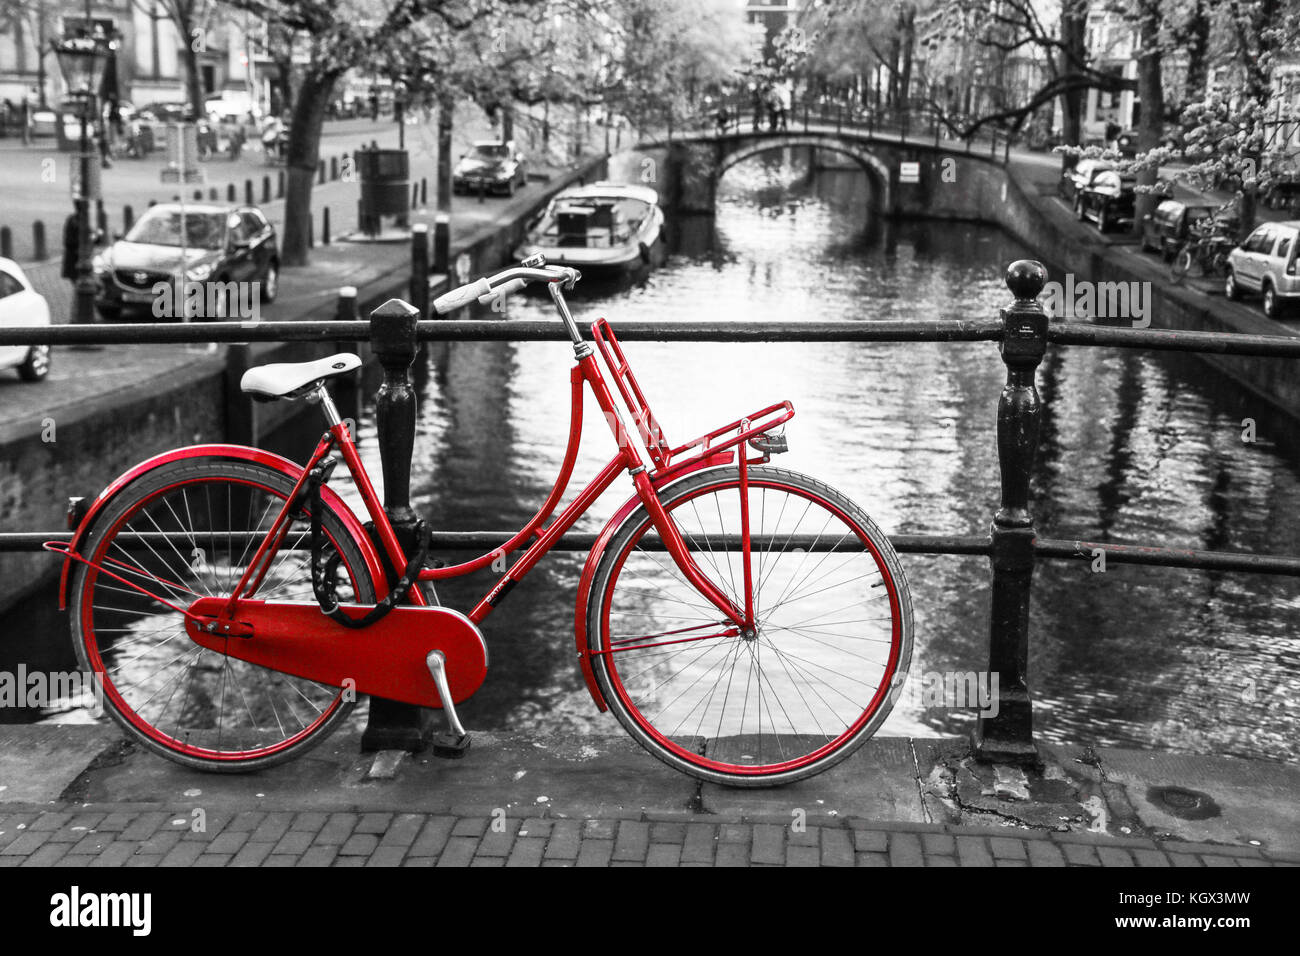 A picture of a lonely red bike on the bridge over the channel in Amsterdam. The background is black and white. Stock Photo